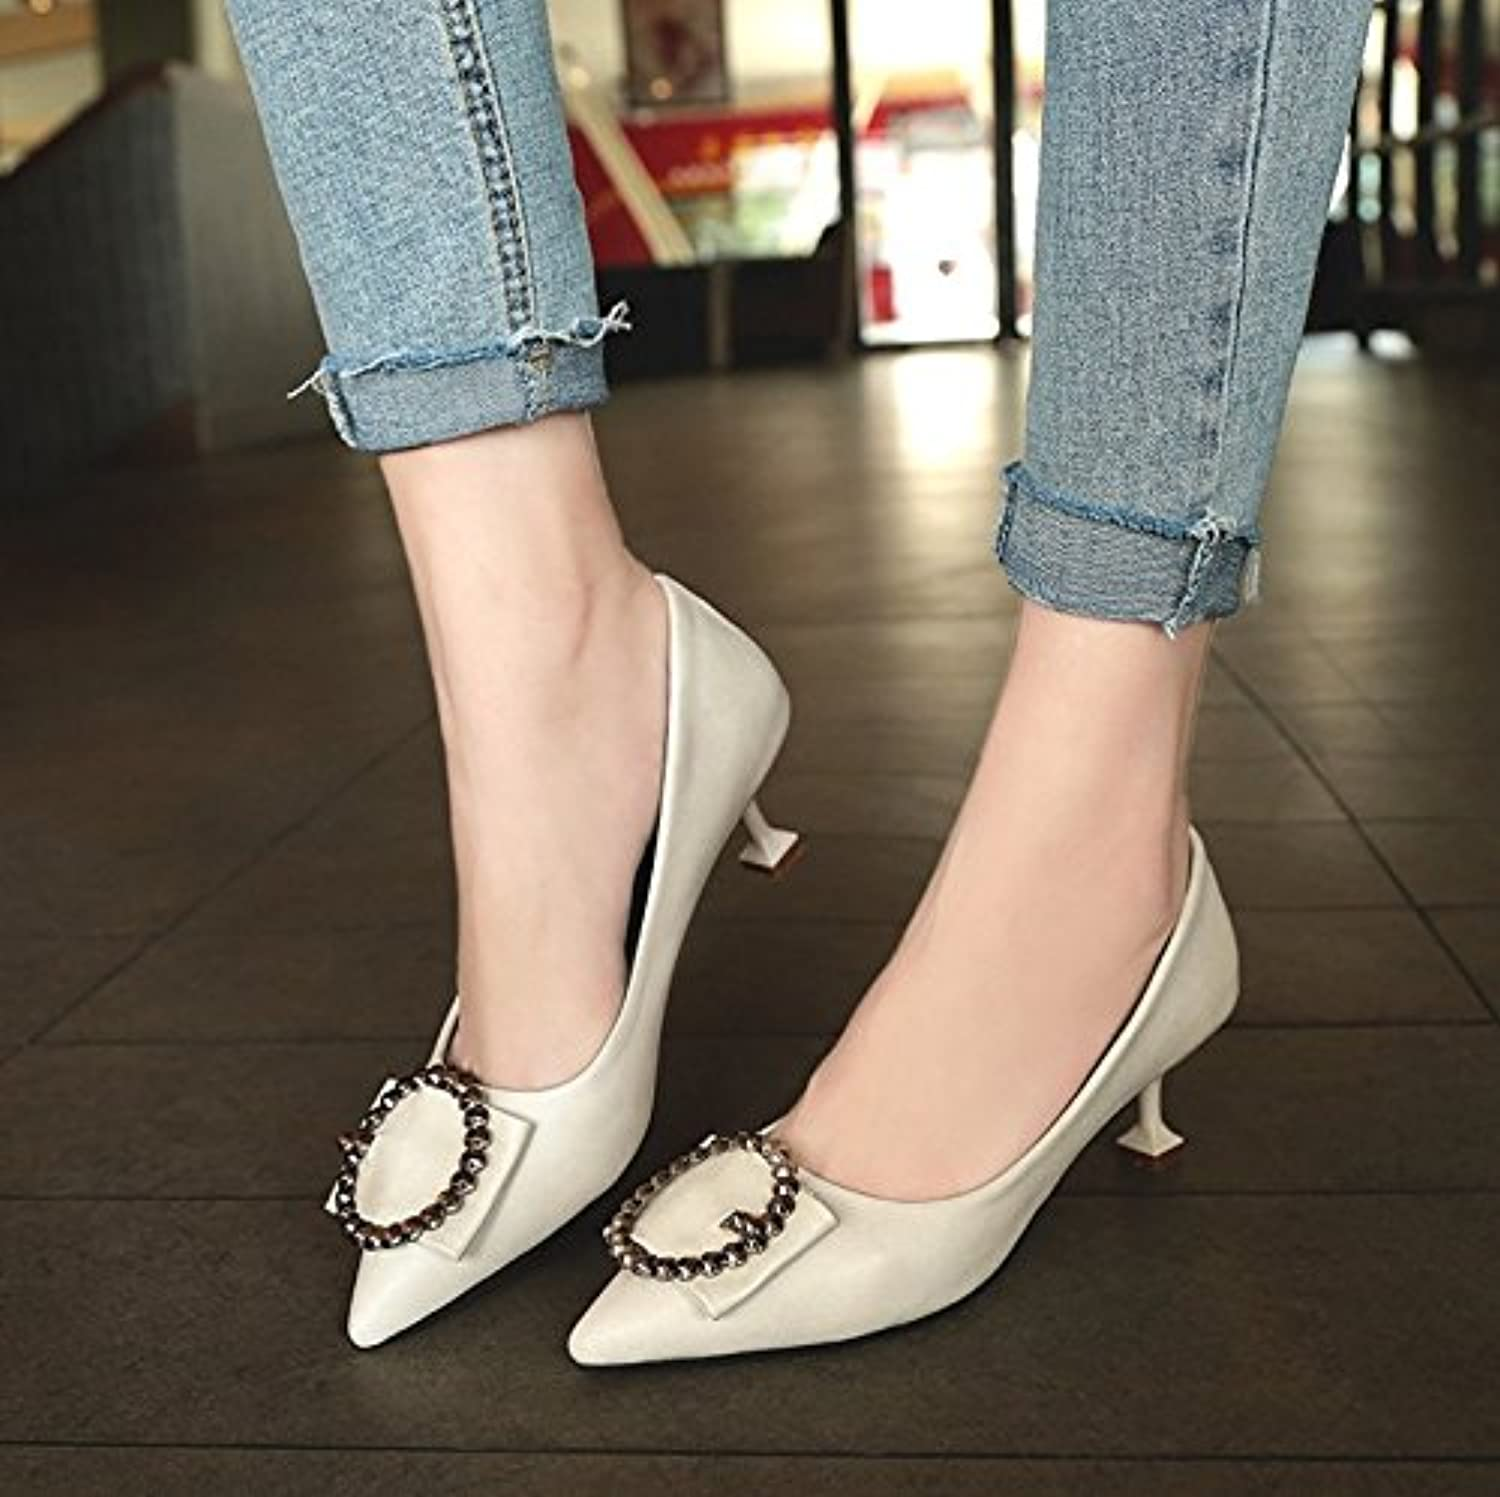 WYMBS Autumn and Winter Gifts Women's shoes Pointed, Shallow, Metal Trim, Single shoes